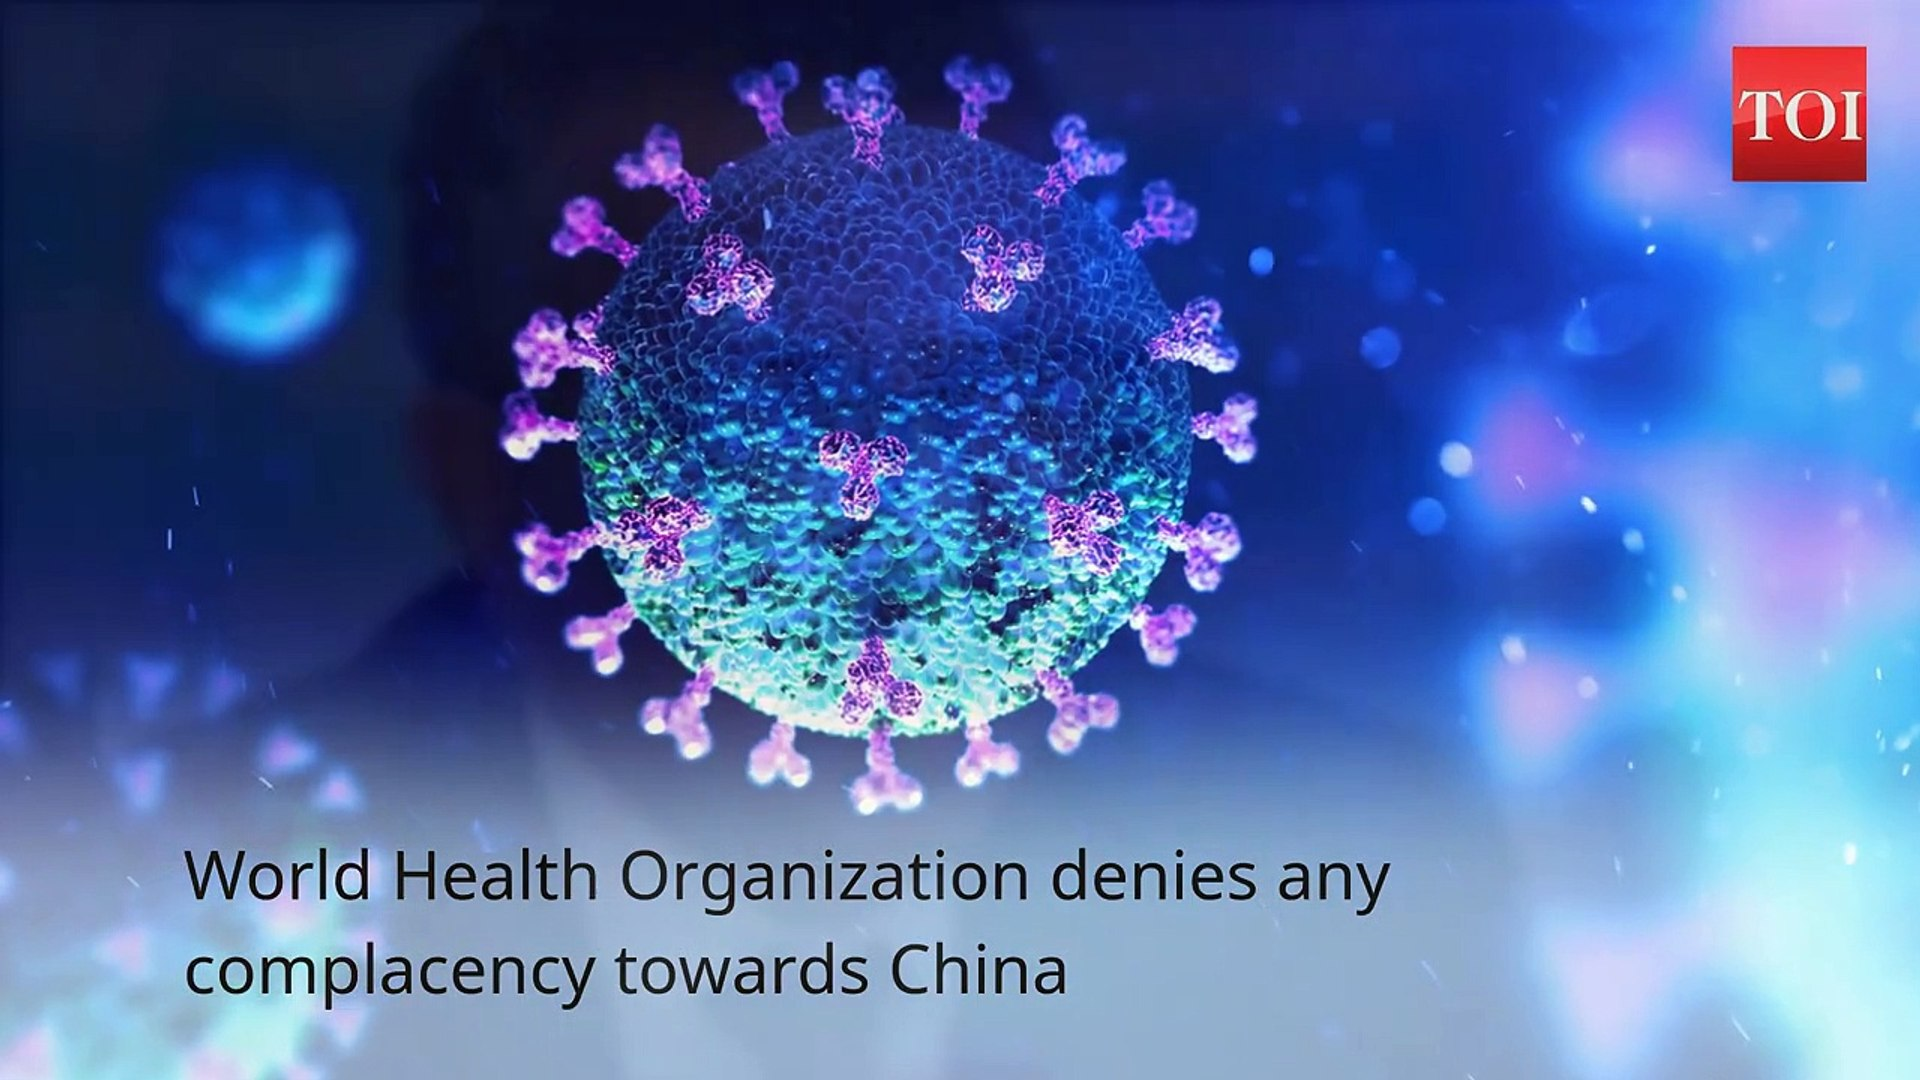 COVID-19- Not China, first alert about virus from our office, says WHO